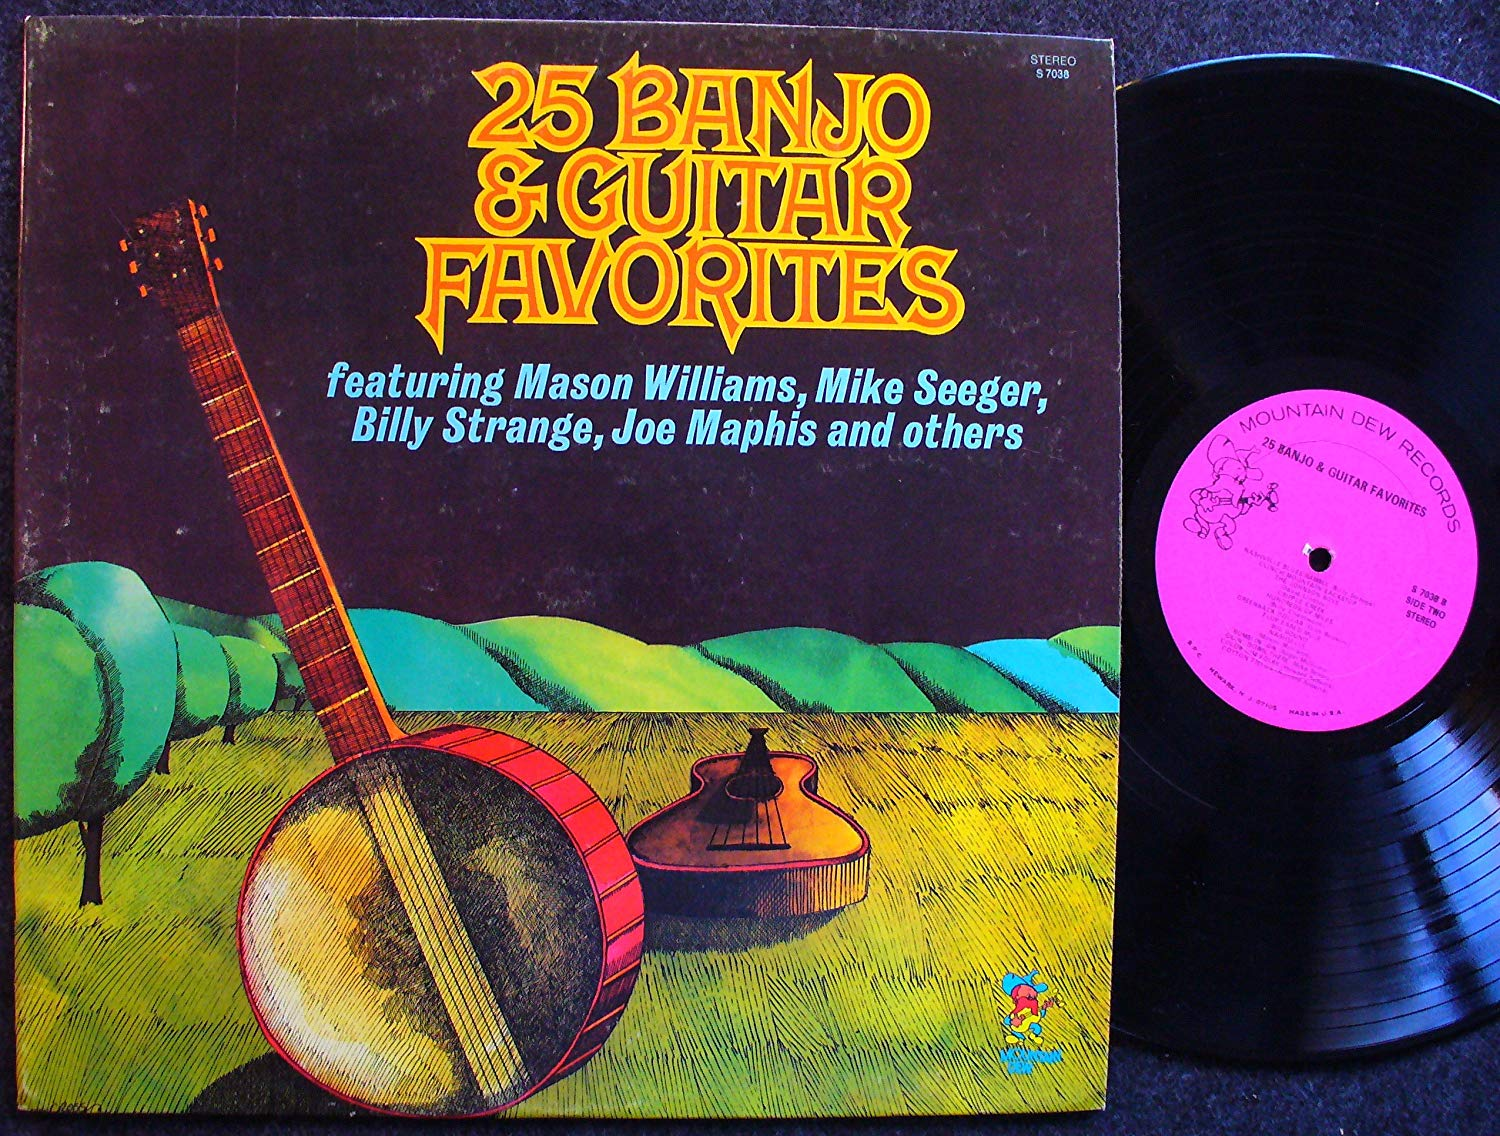 25 Banjo & Guitar Favorites